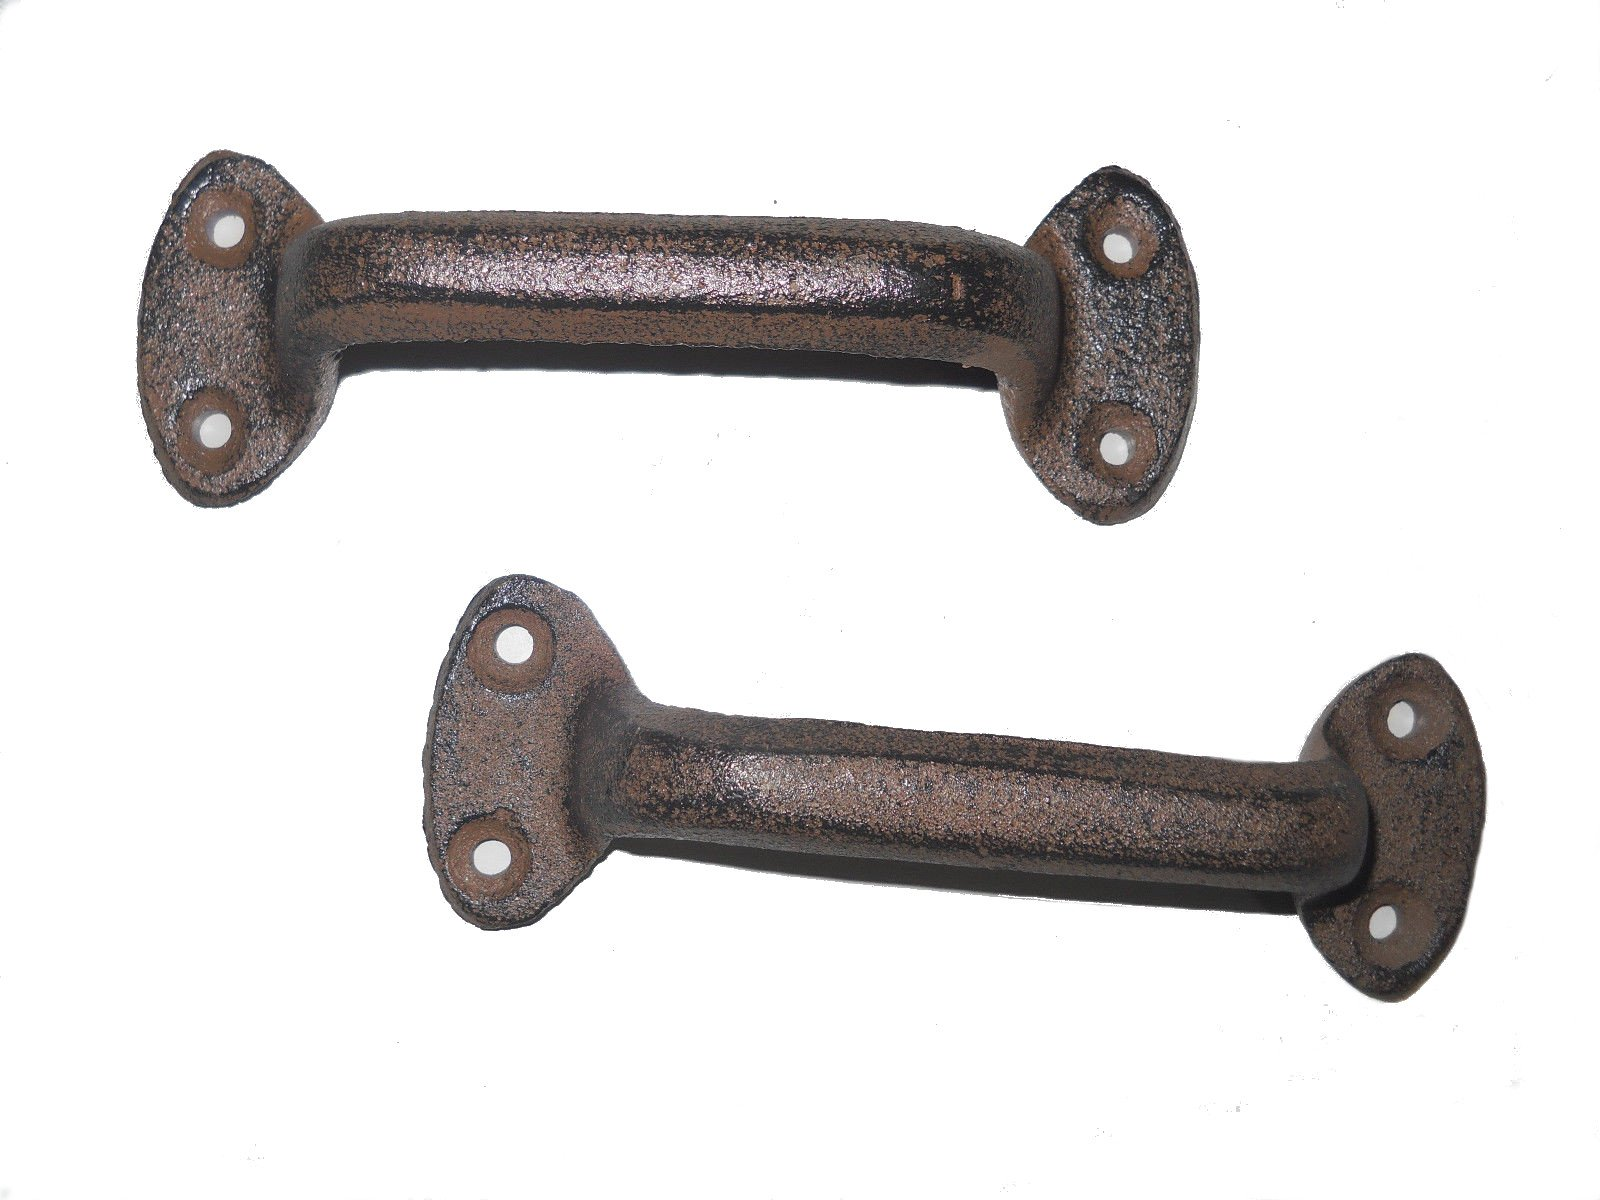 WD-2 Pcs Solid Cast Iron Antique Style Rustic Barn Handle Gate Pull, Shed - Door Handles Rust Brown Finish by WD store